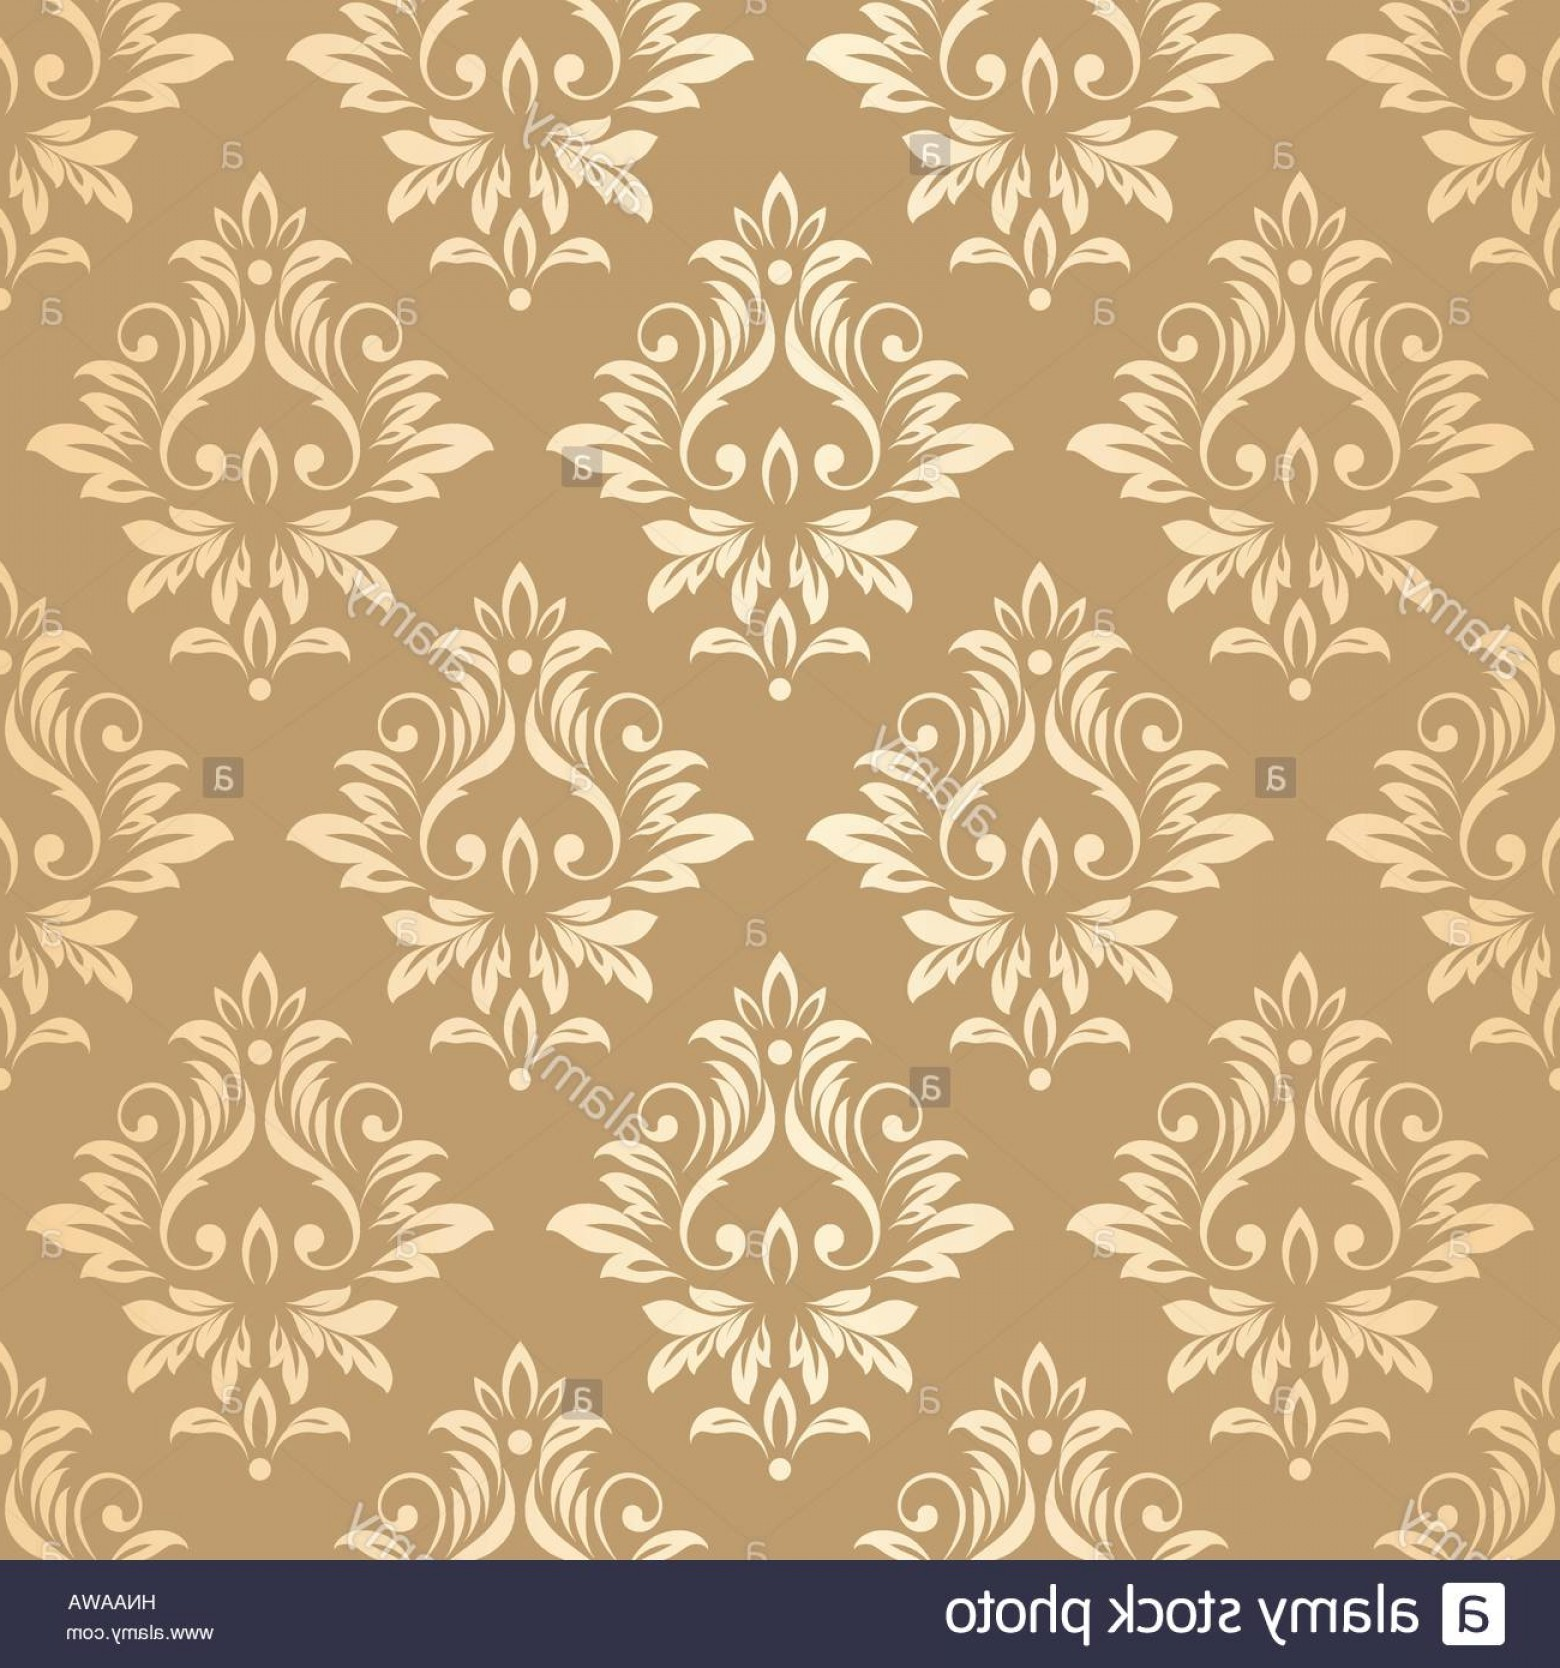 Damask Background Vector Art: Stock Photo Luxury Golden Wallpaper Vintage Seamless Damask Pattern Vector Background